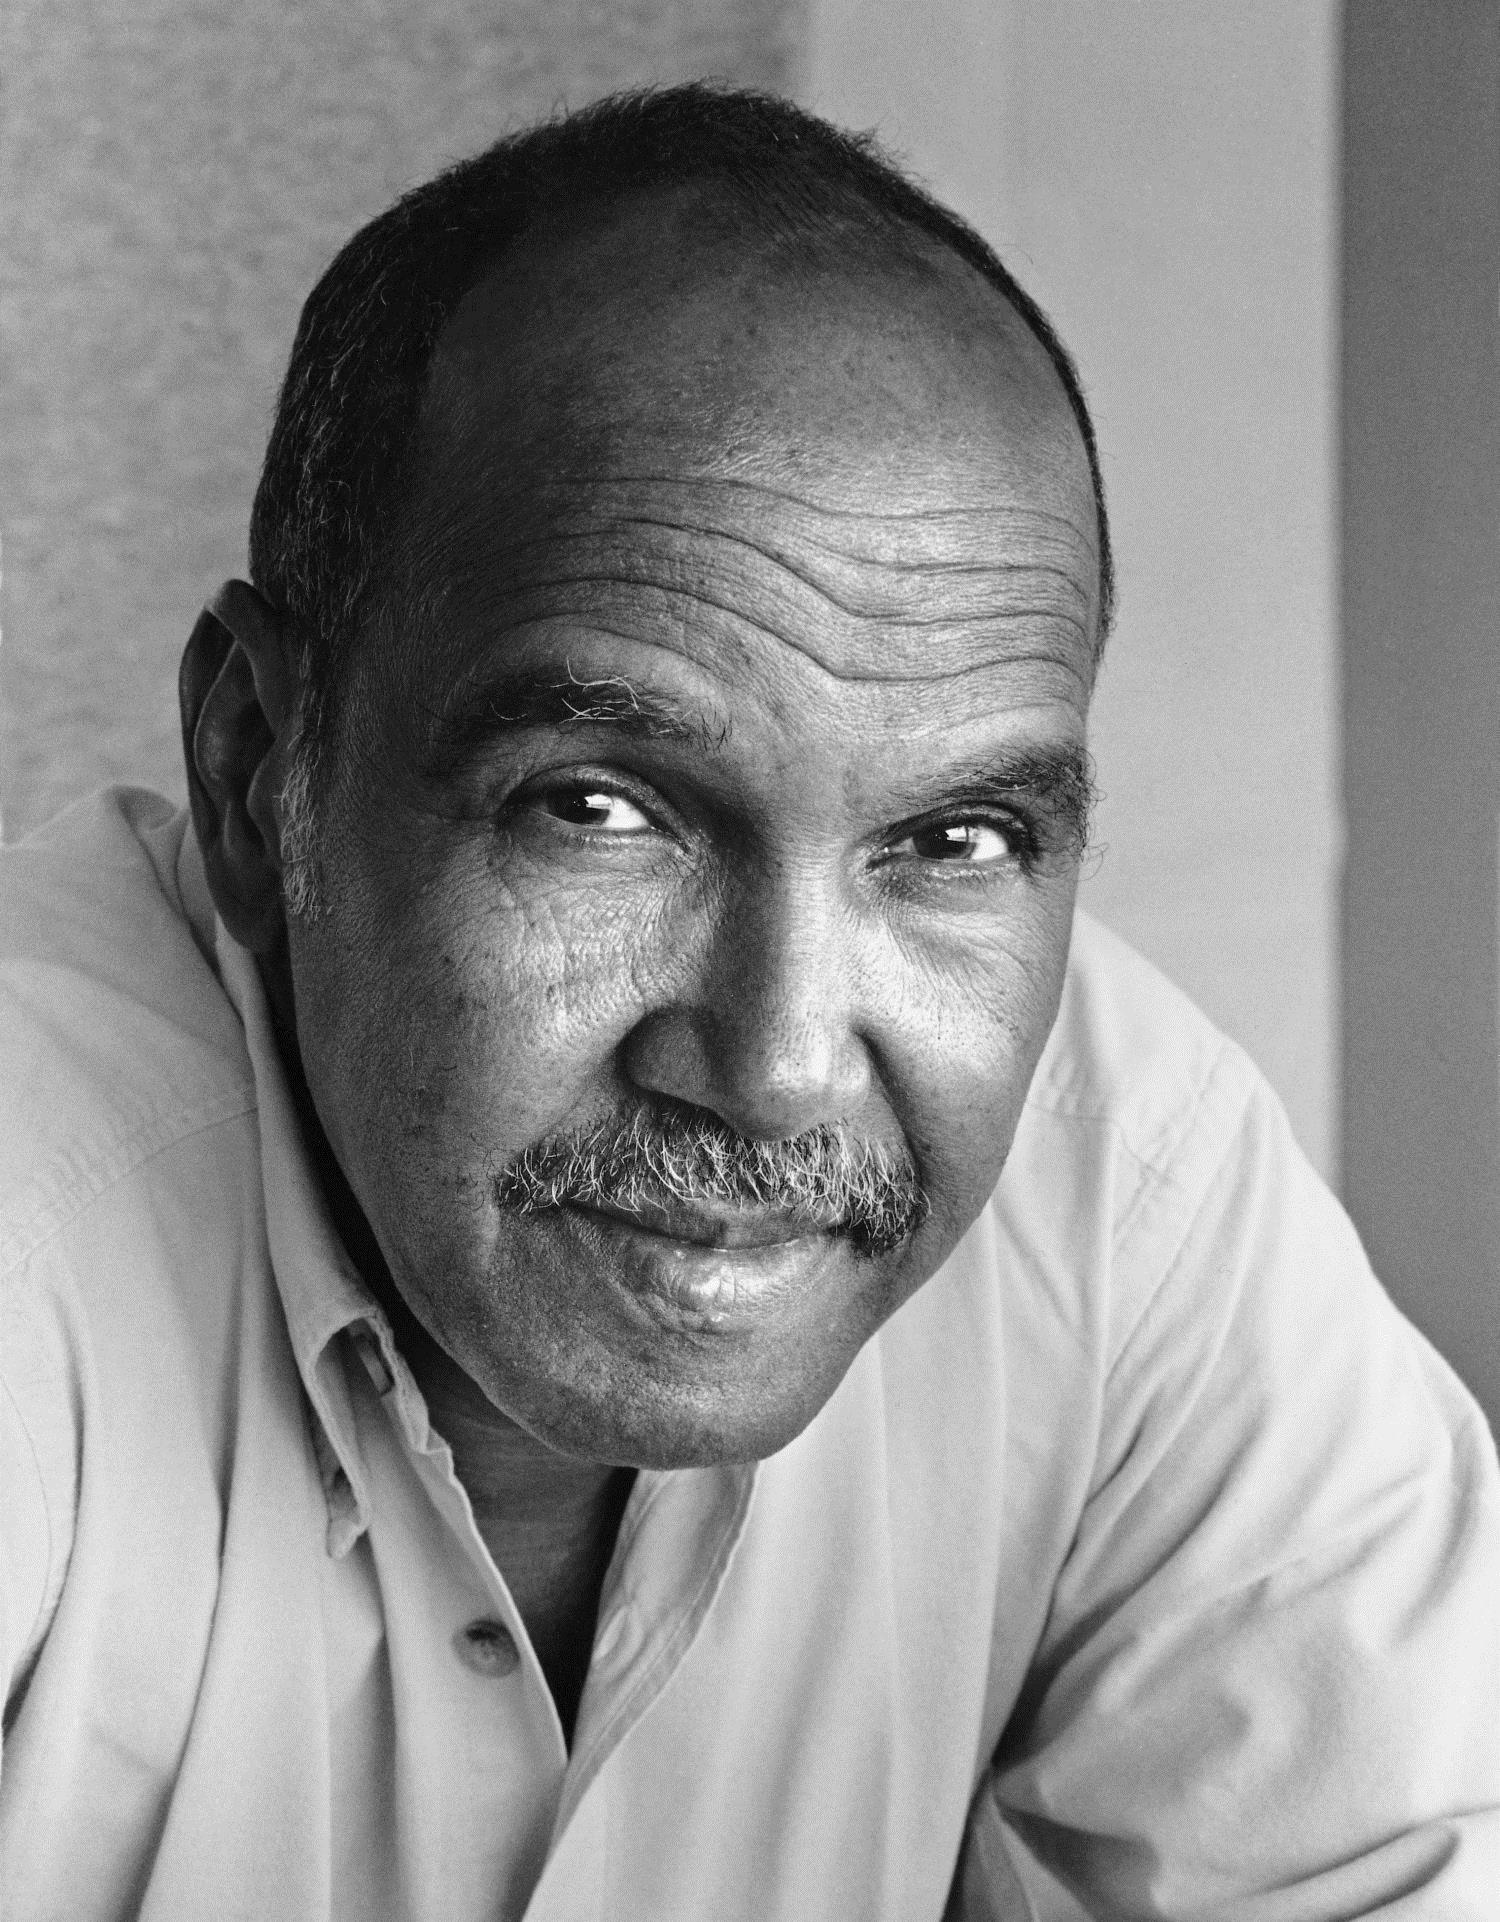 portrait of Nuruddin Farah